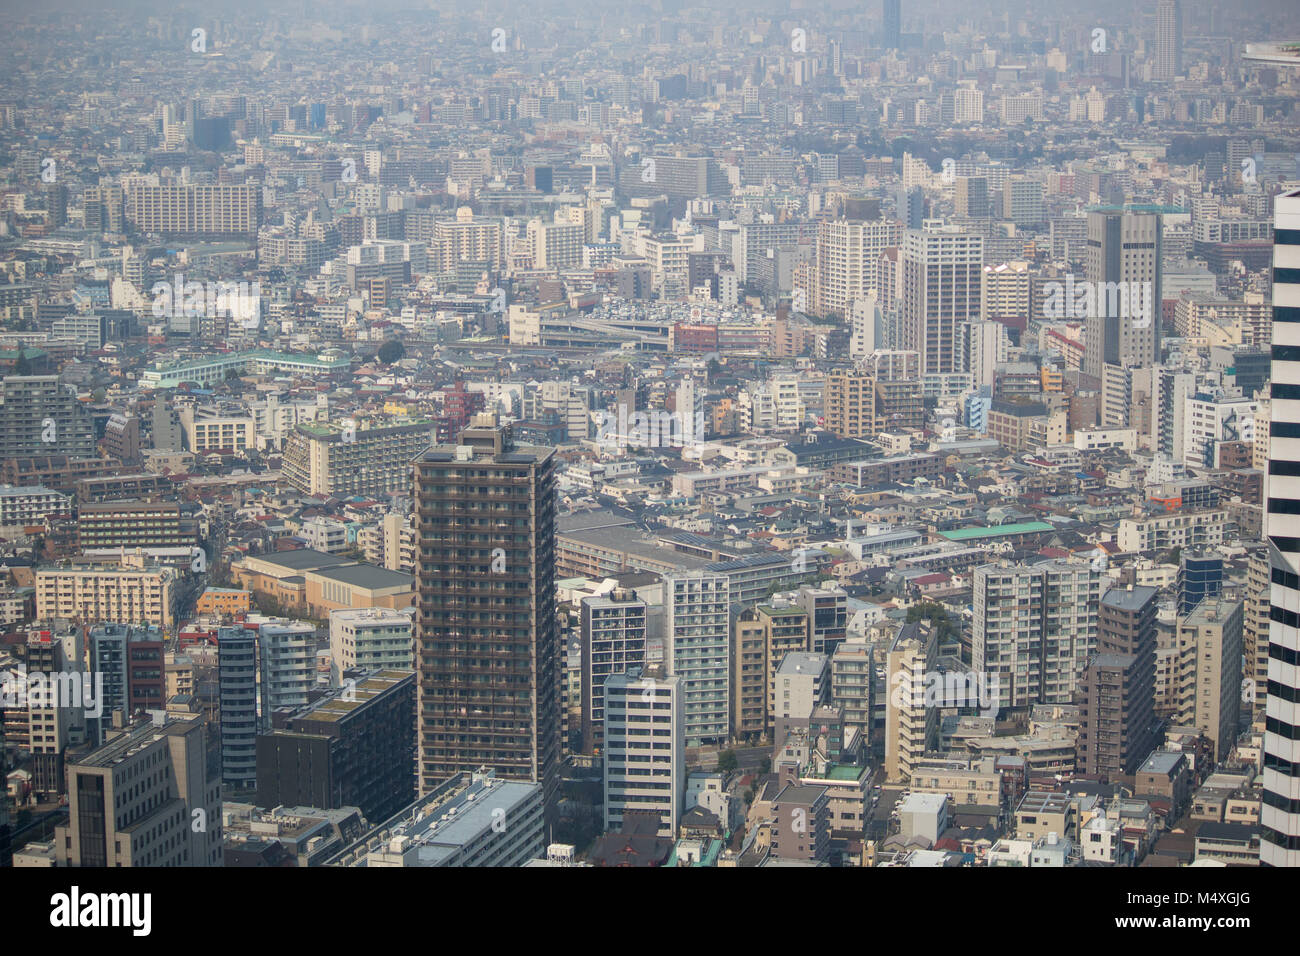 The view from the 45th Floor of the Tokyo Government building showing a view of central Tokyo - Stock Image